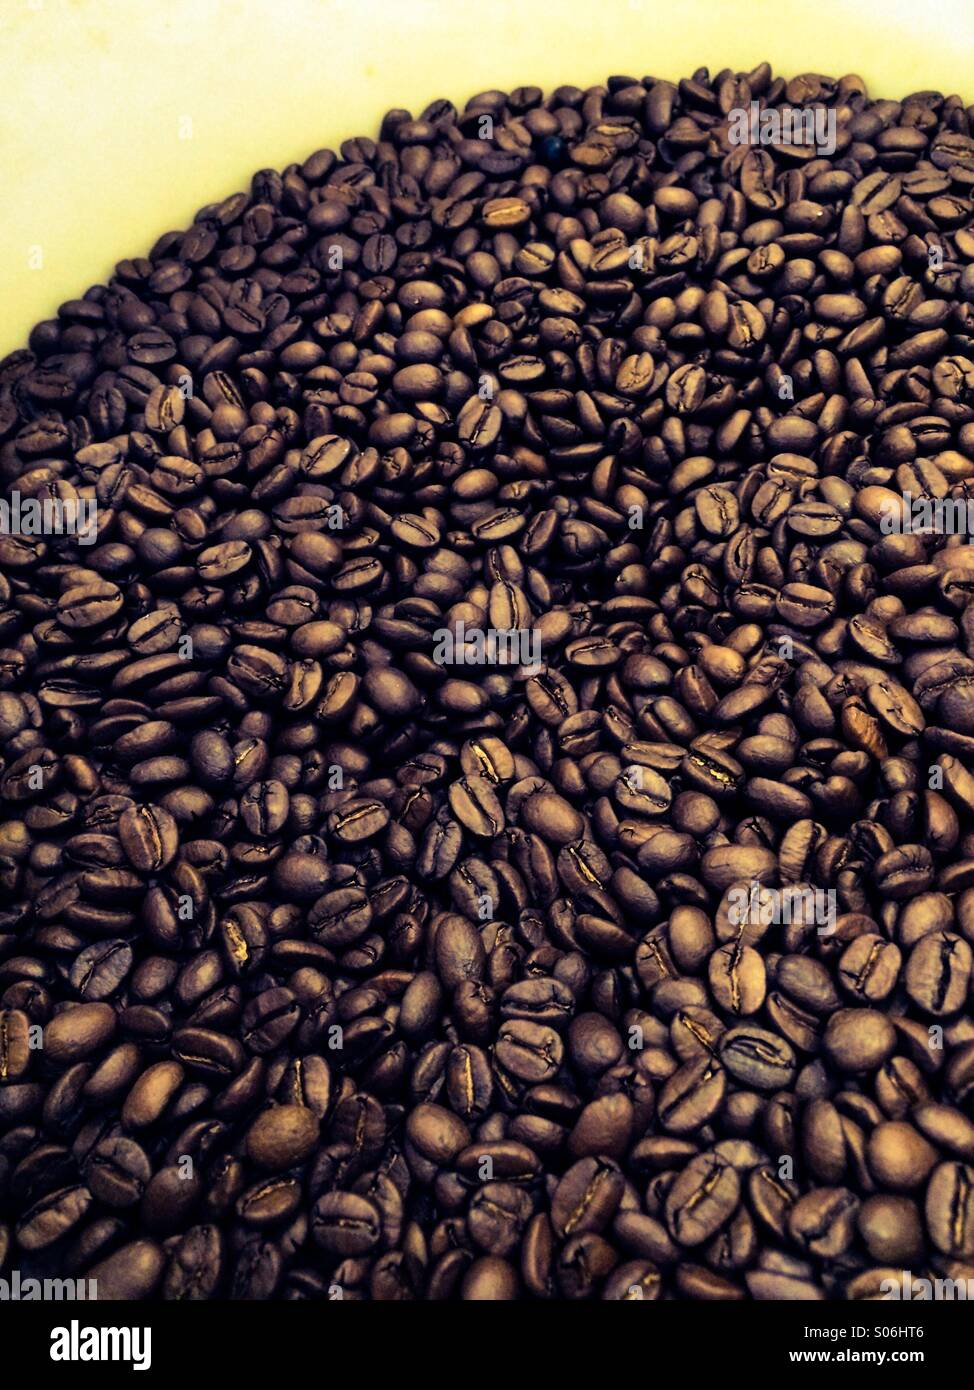 Coffee beans in a wooden barrel - Stock Image